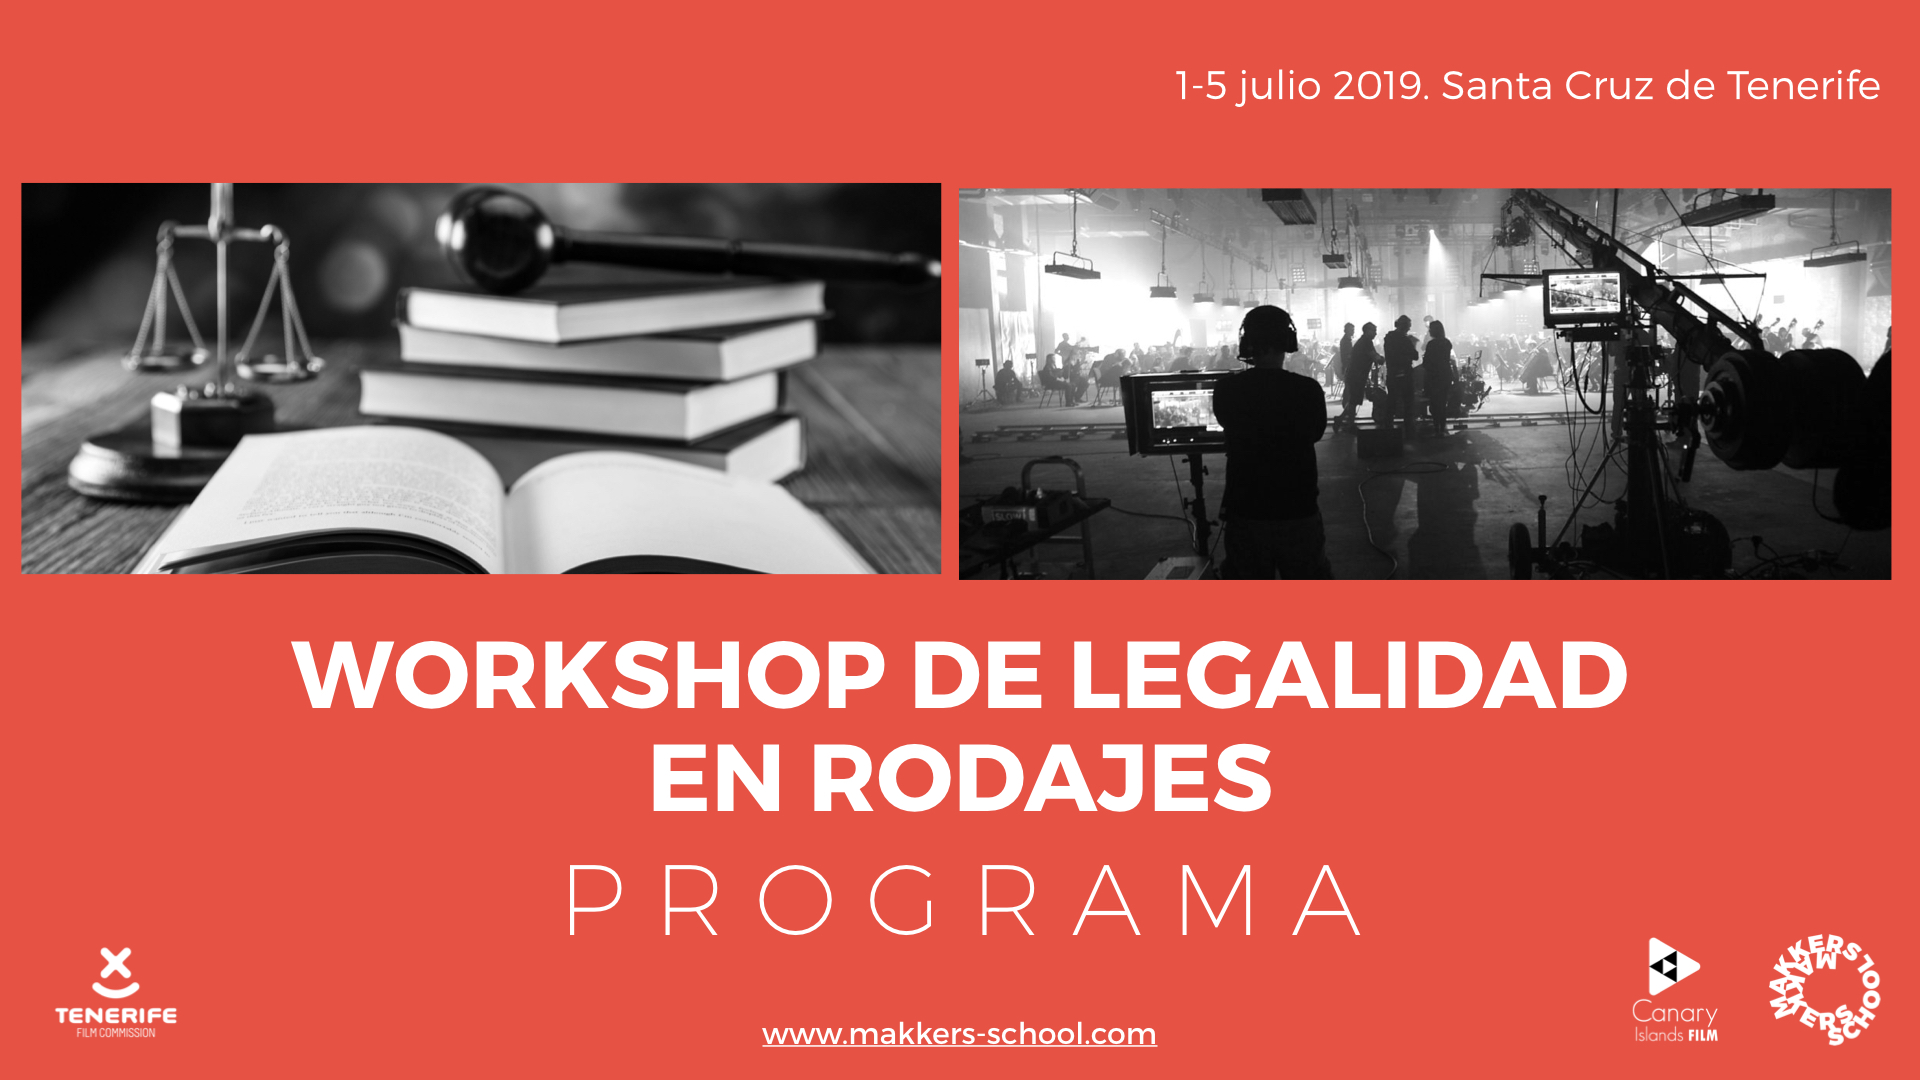 Programa-Workshop de Legalidad Tenerife.001.jpeg